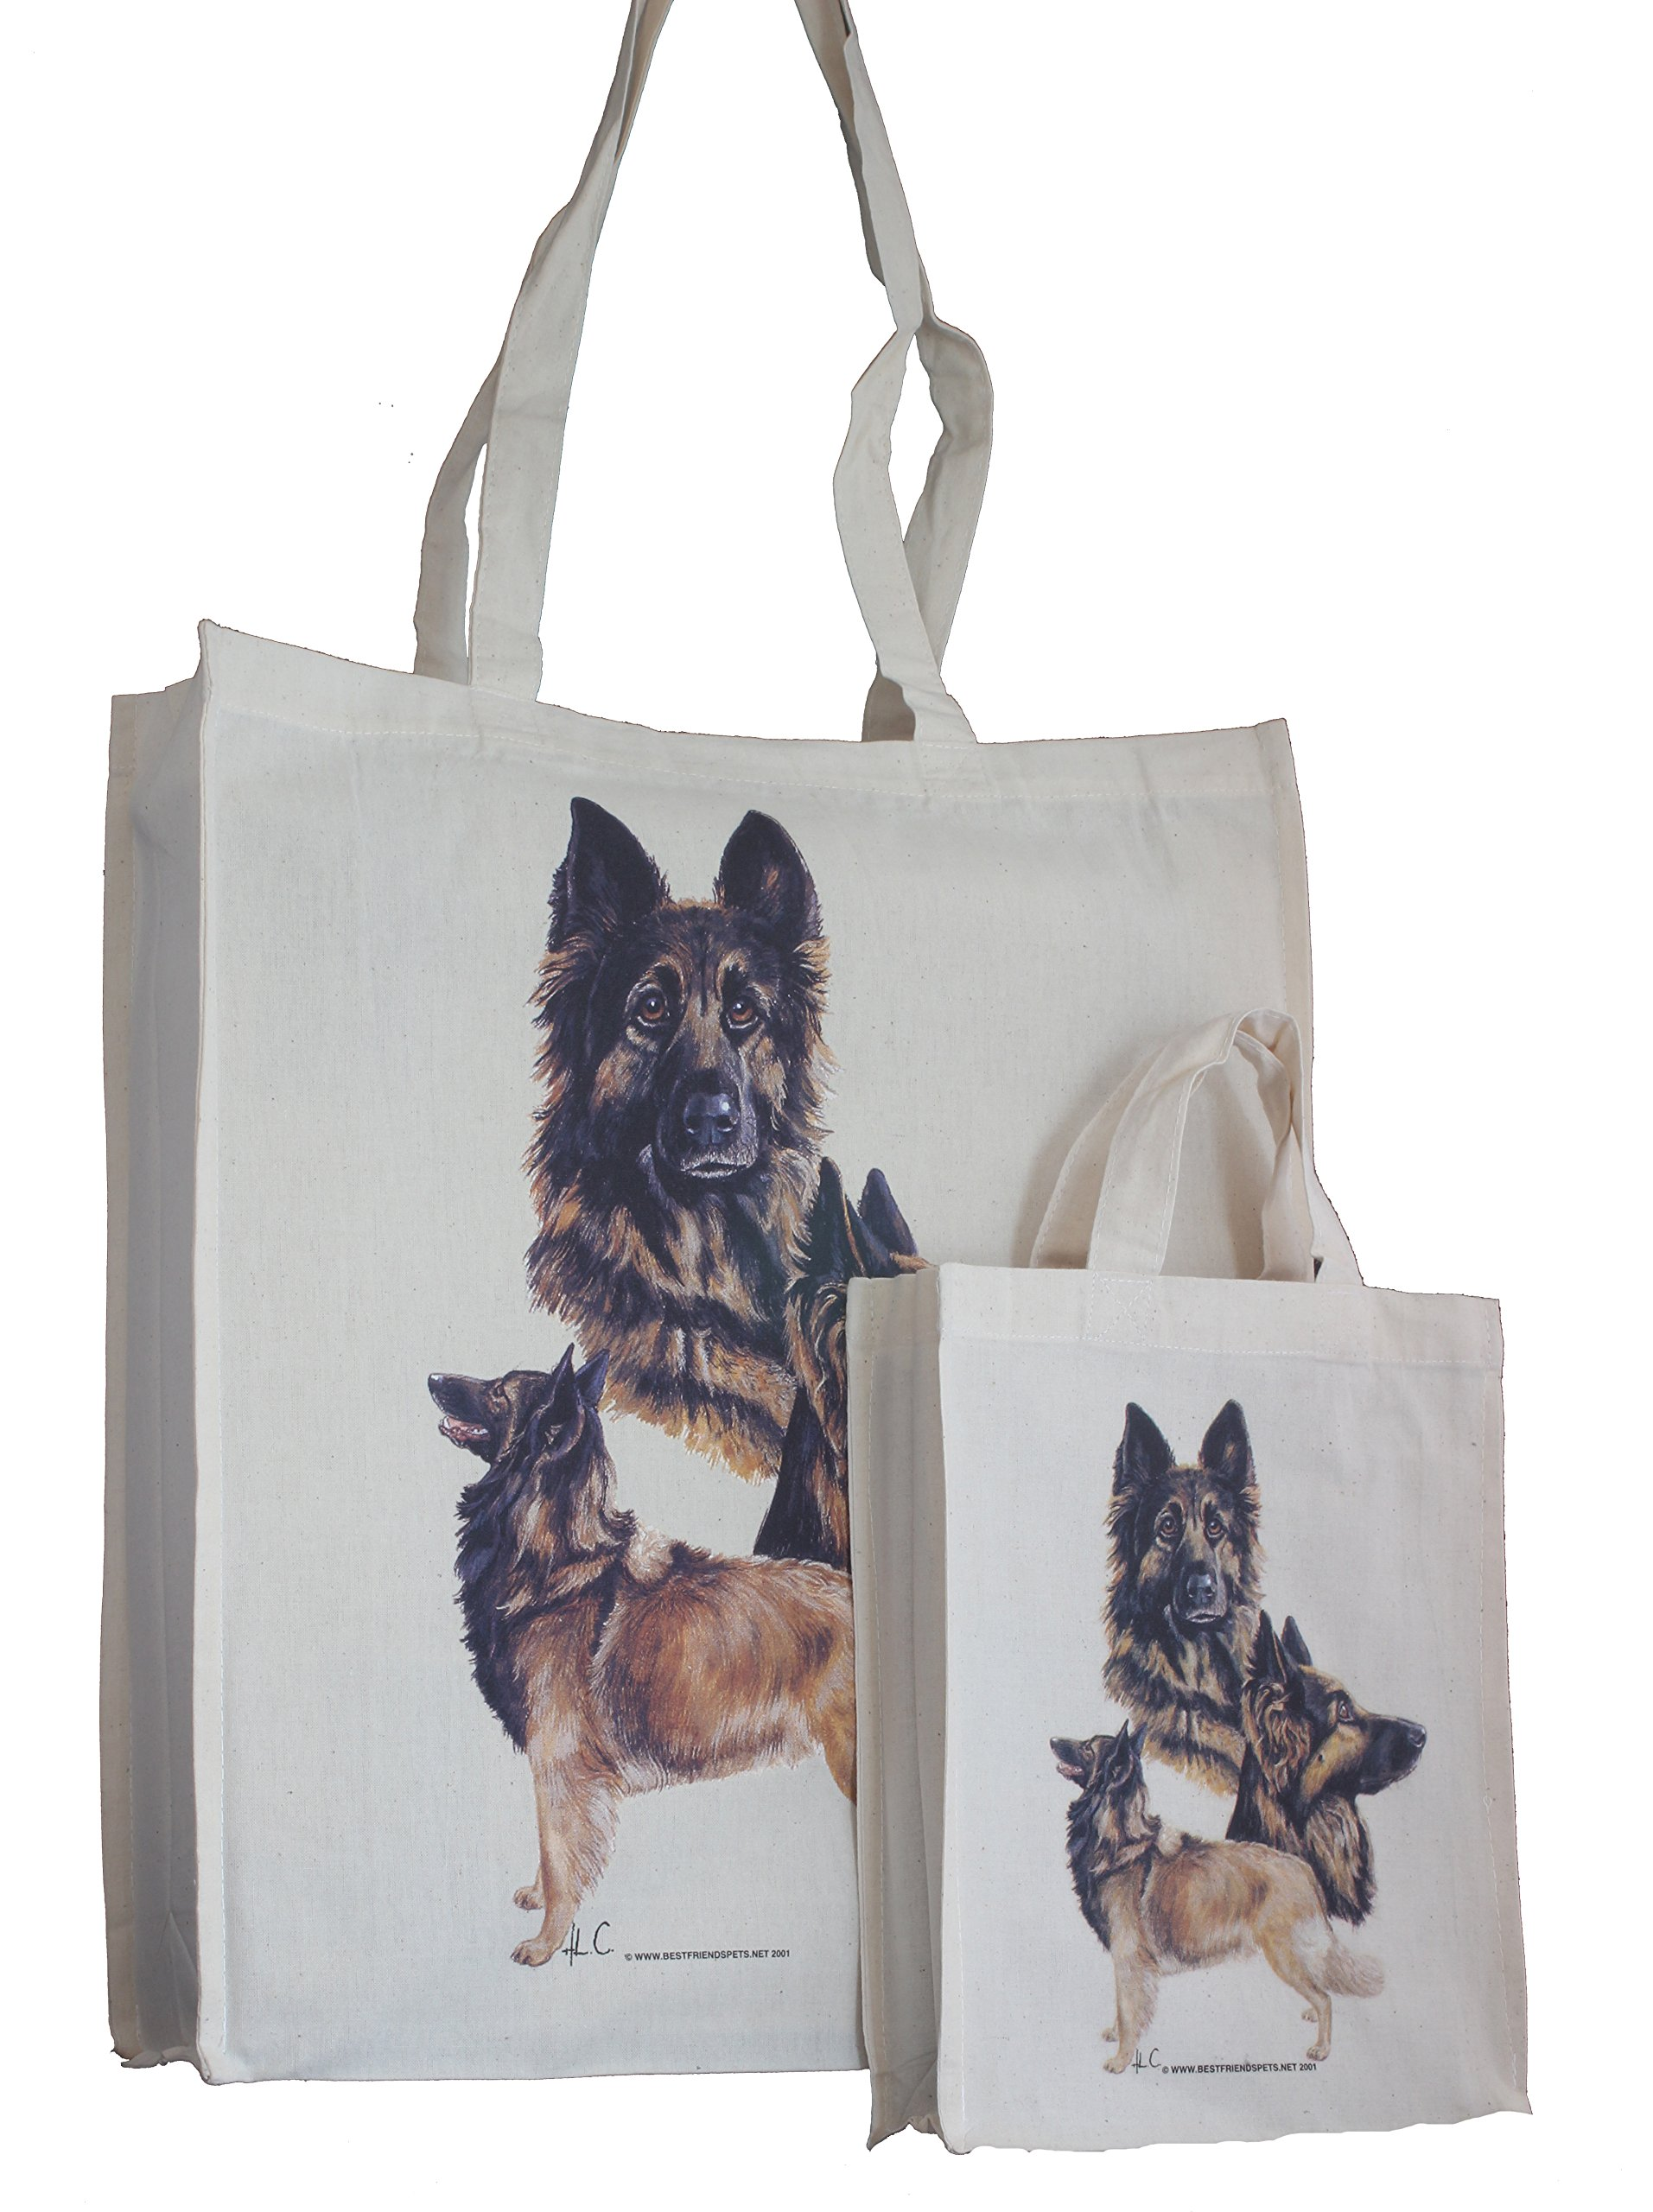 Belgian Tervuren Breed of Dog Adult and Child Shopping or Packed Lunch / Craft / Dog Treats Matching Cotton Bag Tote with Gussets for Extra Space